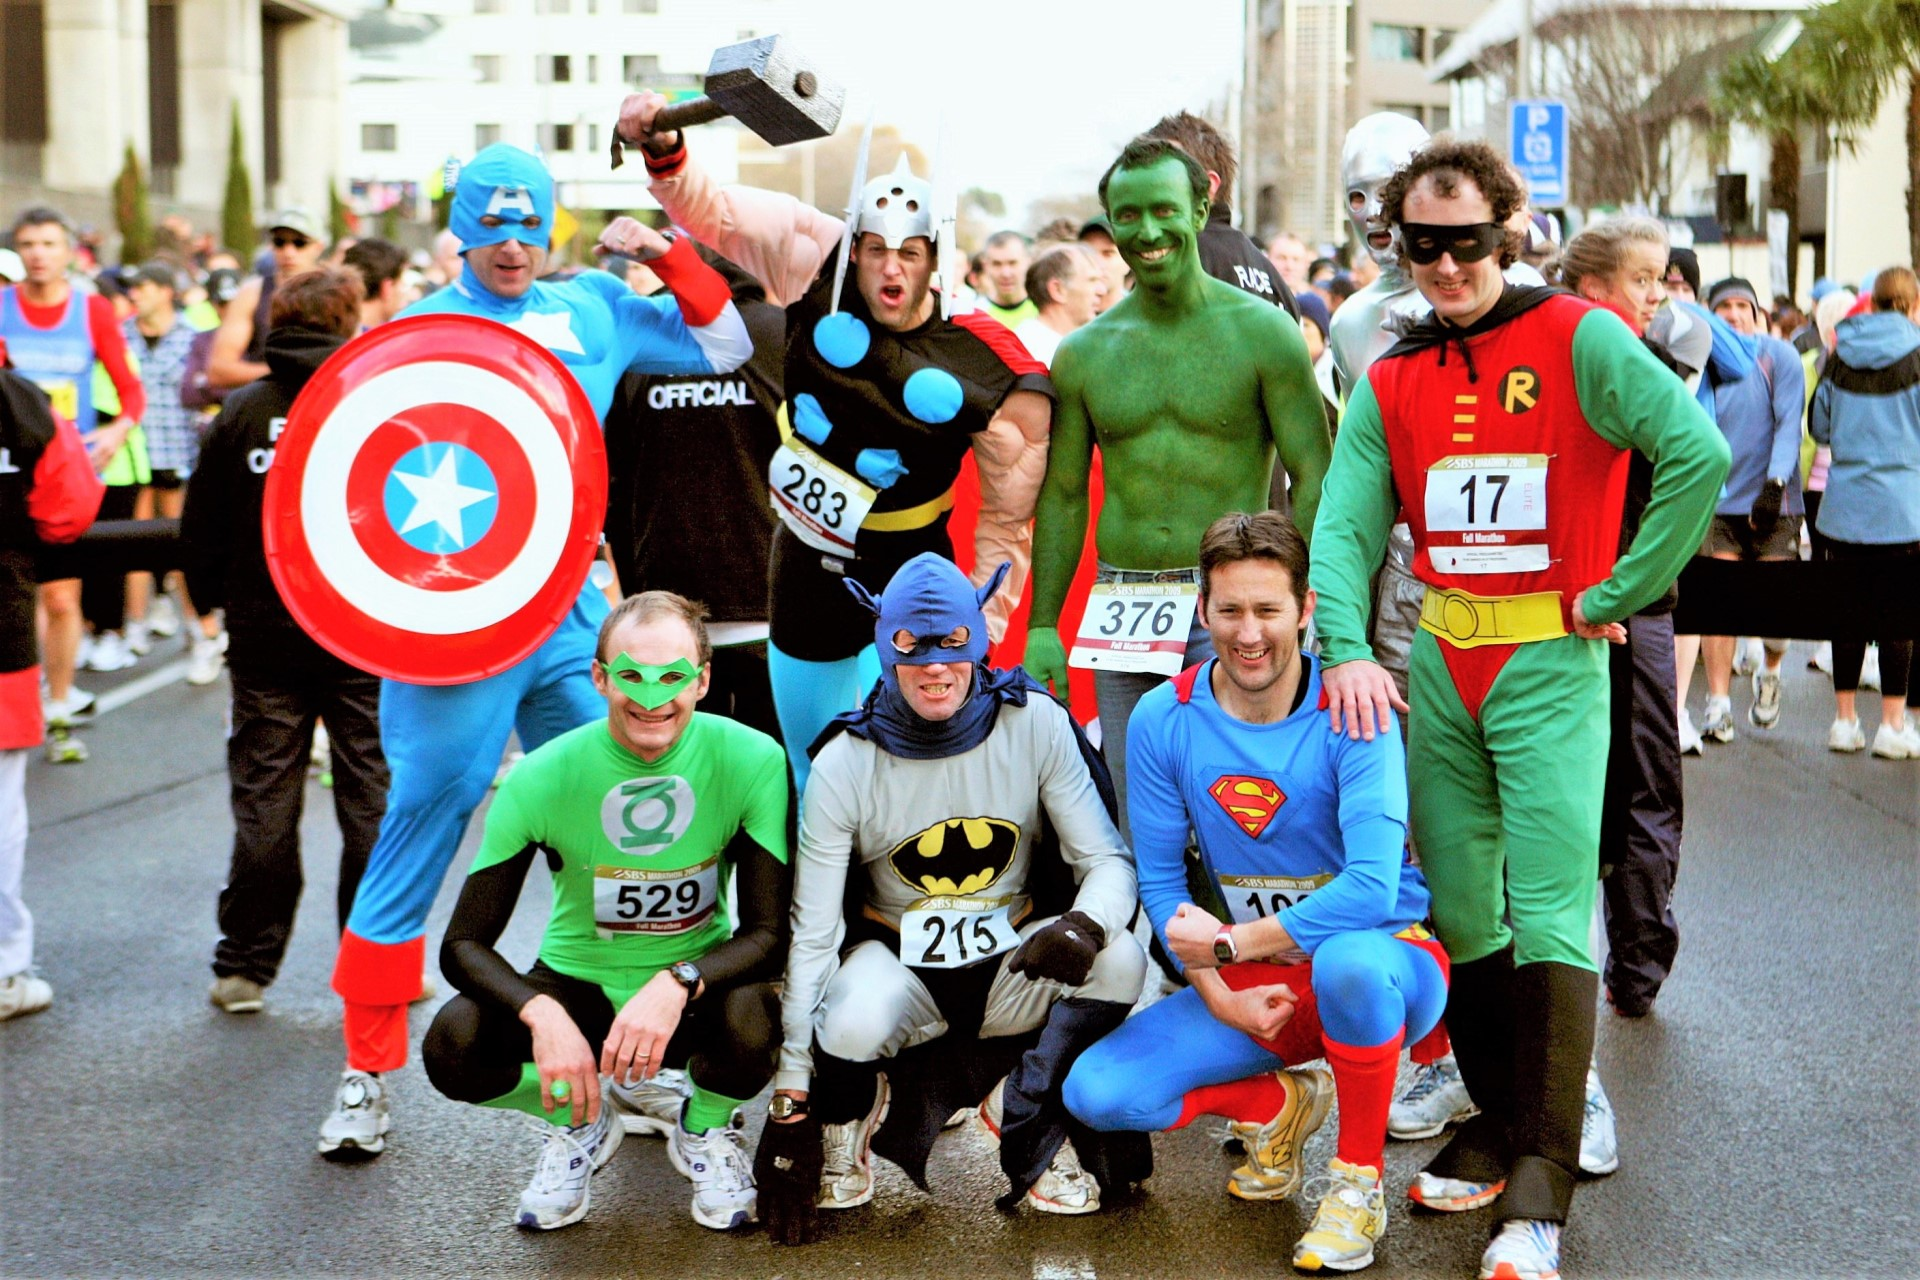 All marathoners are super heroes